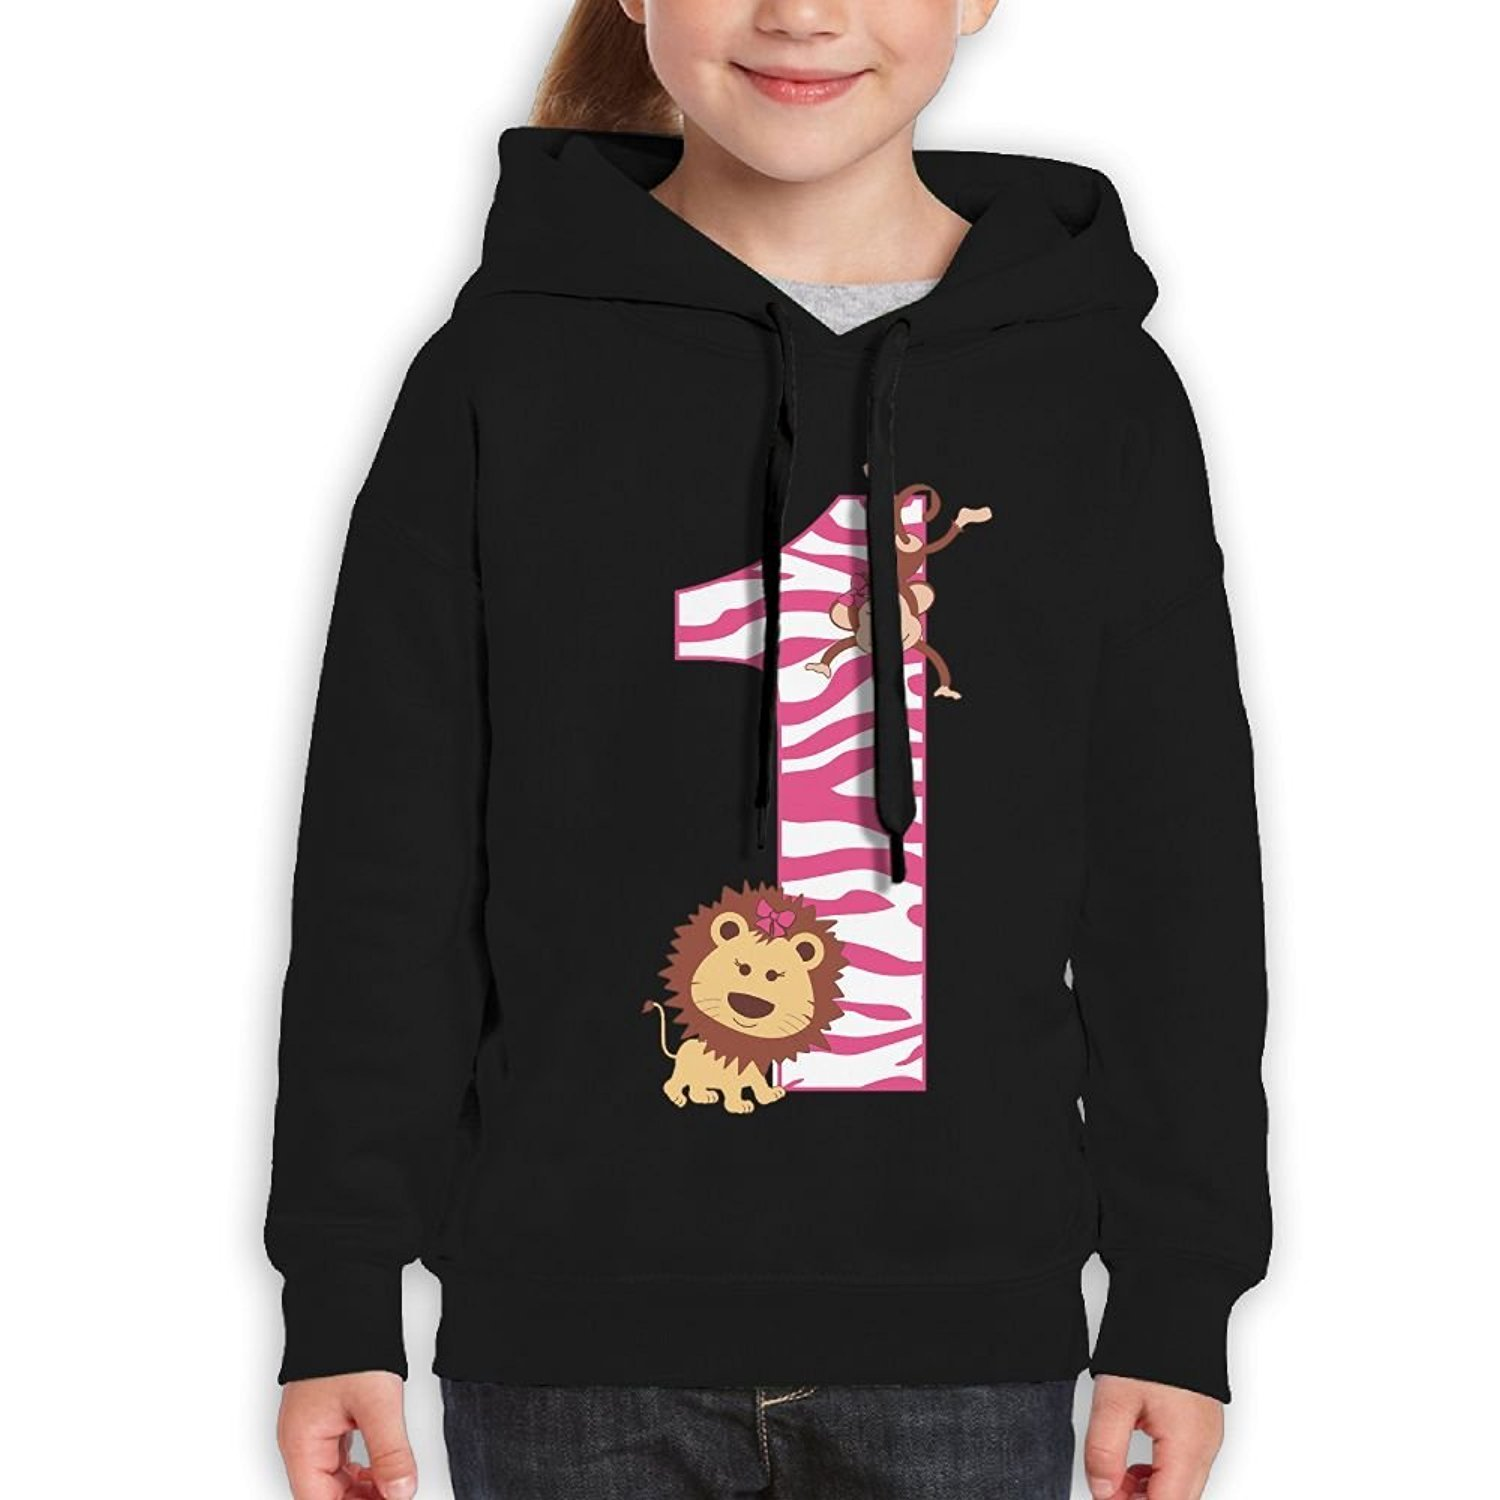 Starcleveland Teenager Pullover Hoodie Sweatshirt Its My 1st Birthday Little Monkey Teens Hooded Boys Girls